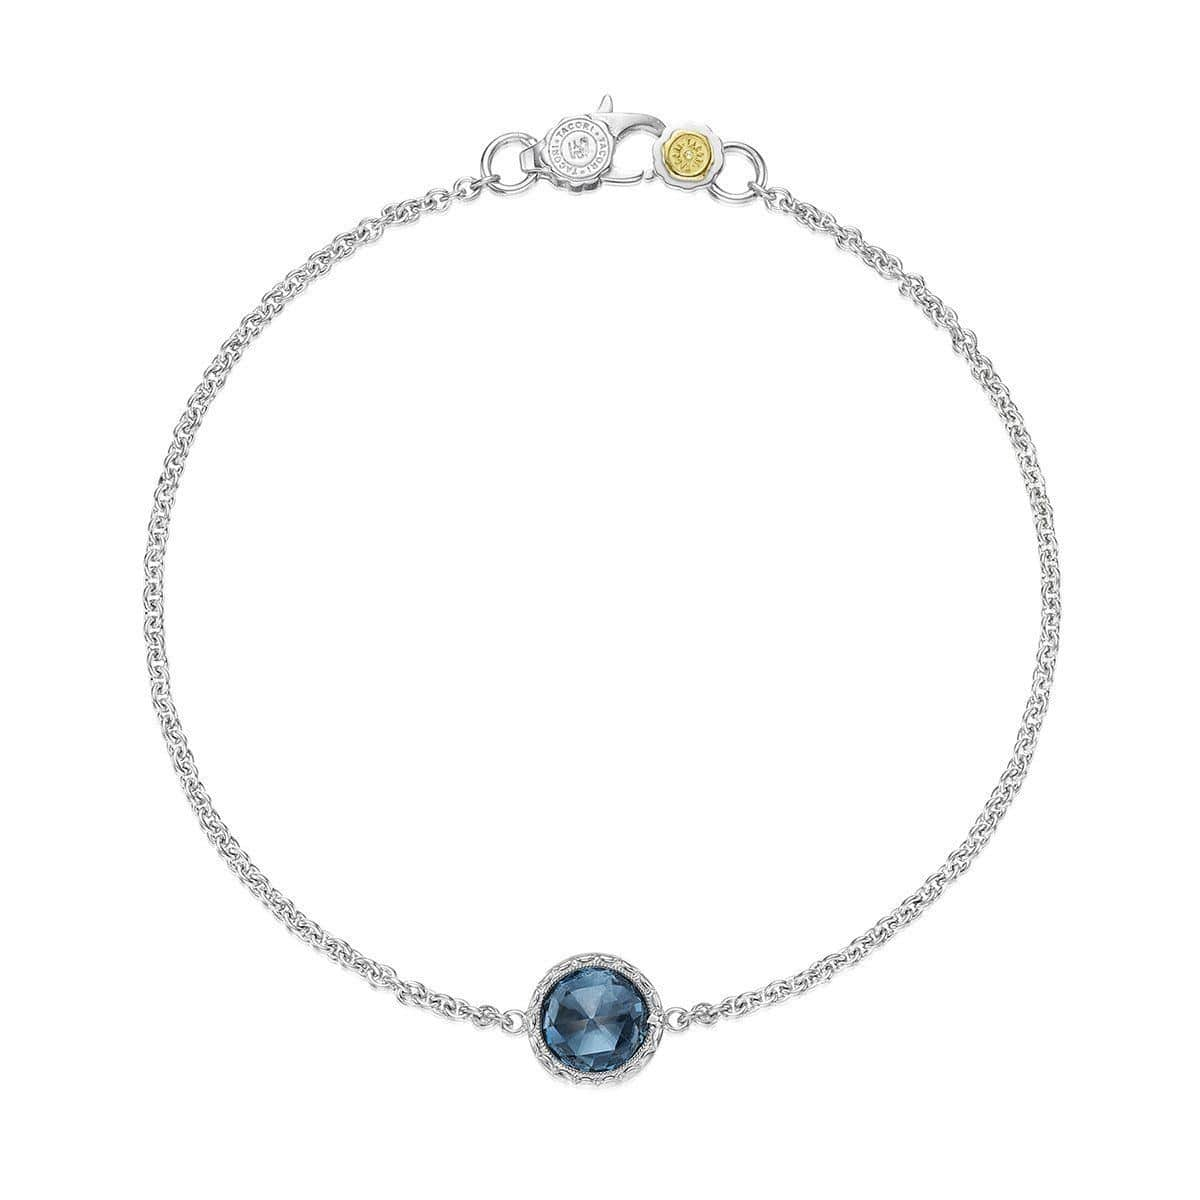 Silver 7mm Round London Blue Topaz Bracelet - SB16733-Tacori-Renee Taylor Gallery